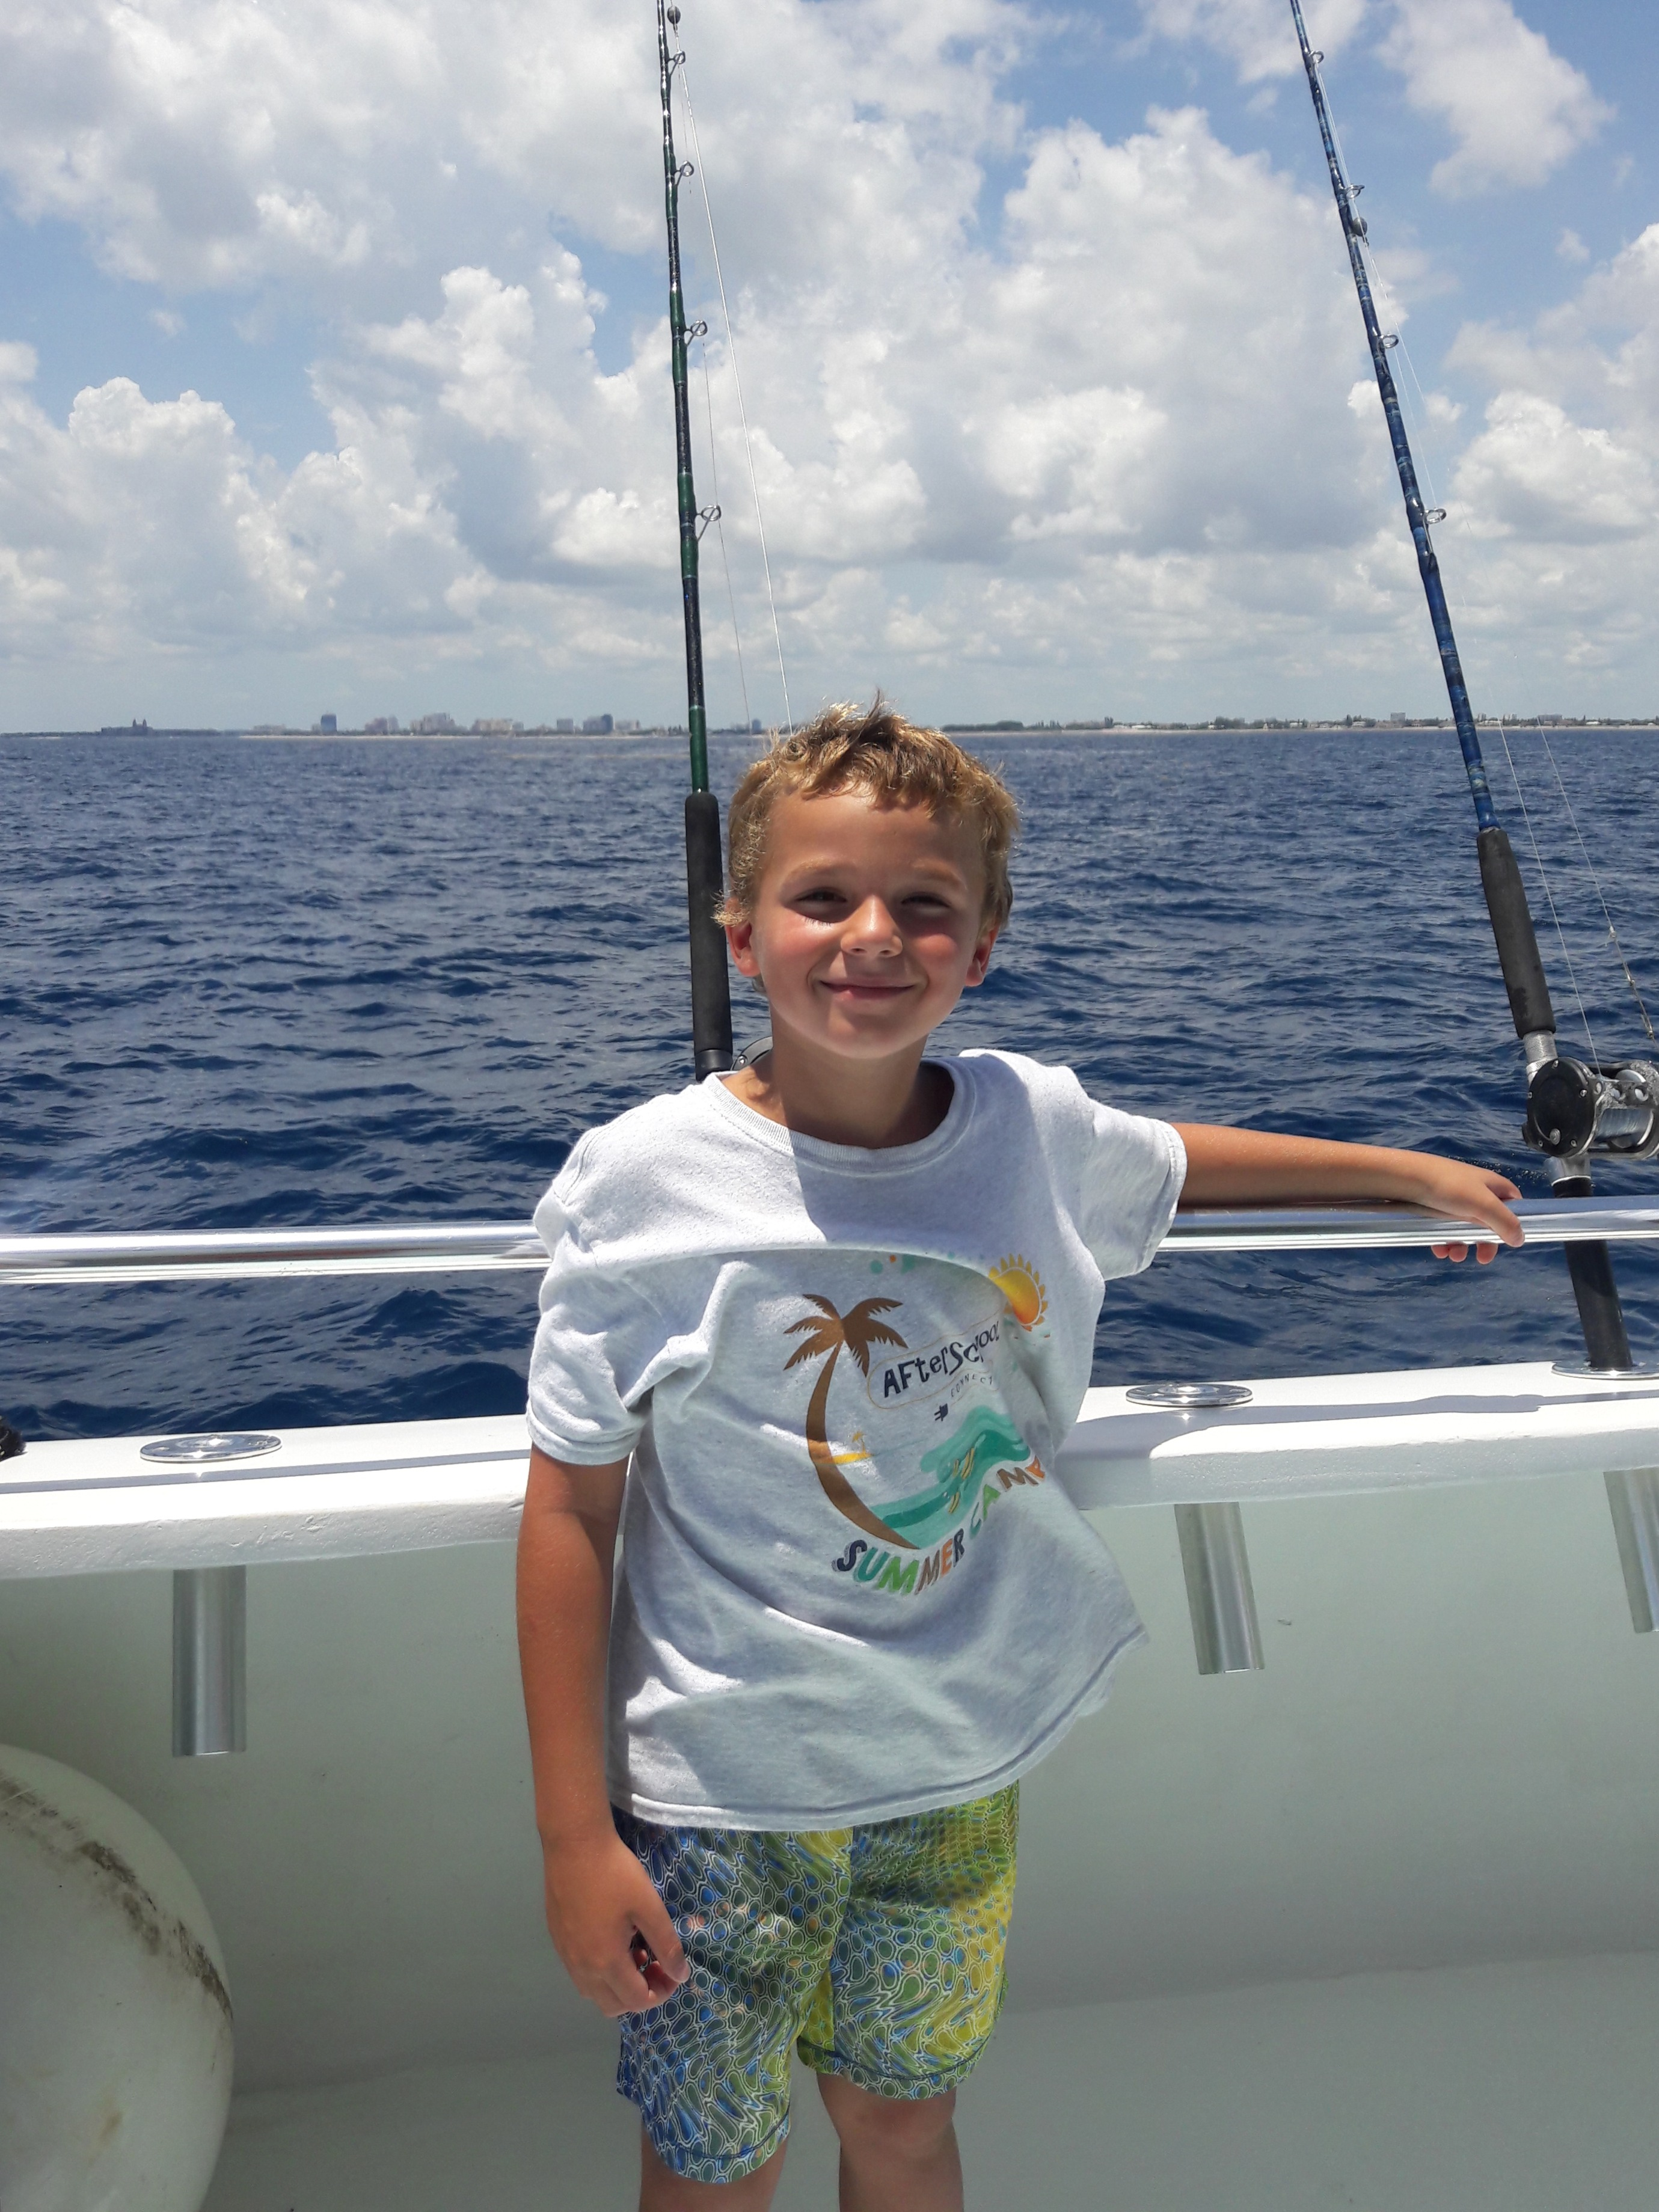 Florida Fishing Academy Boat Trip Image number 7